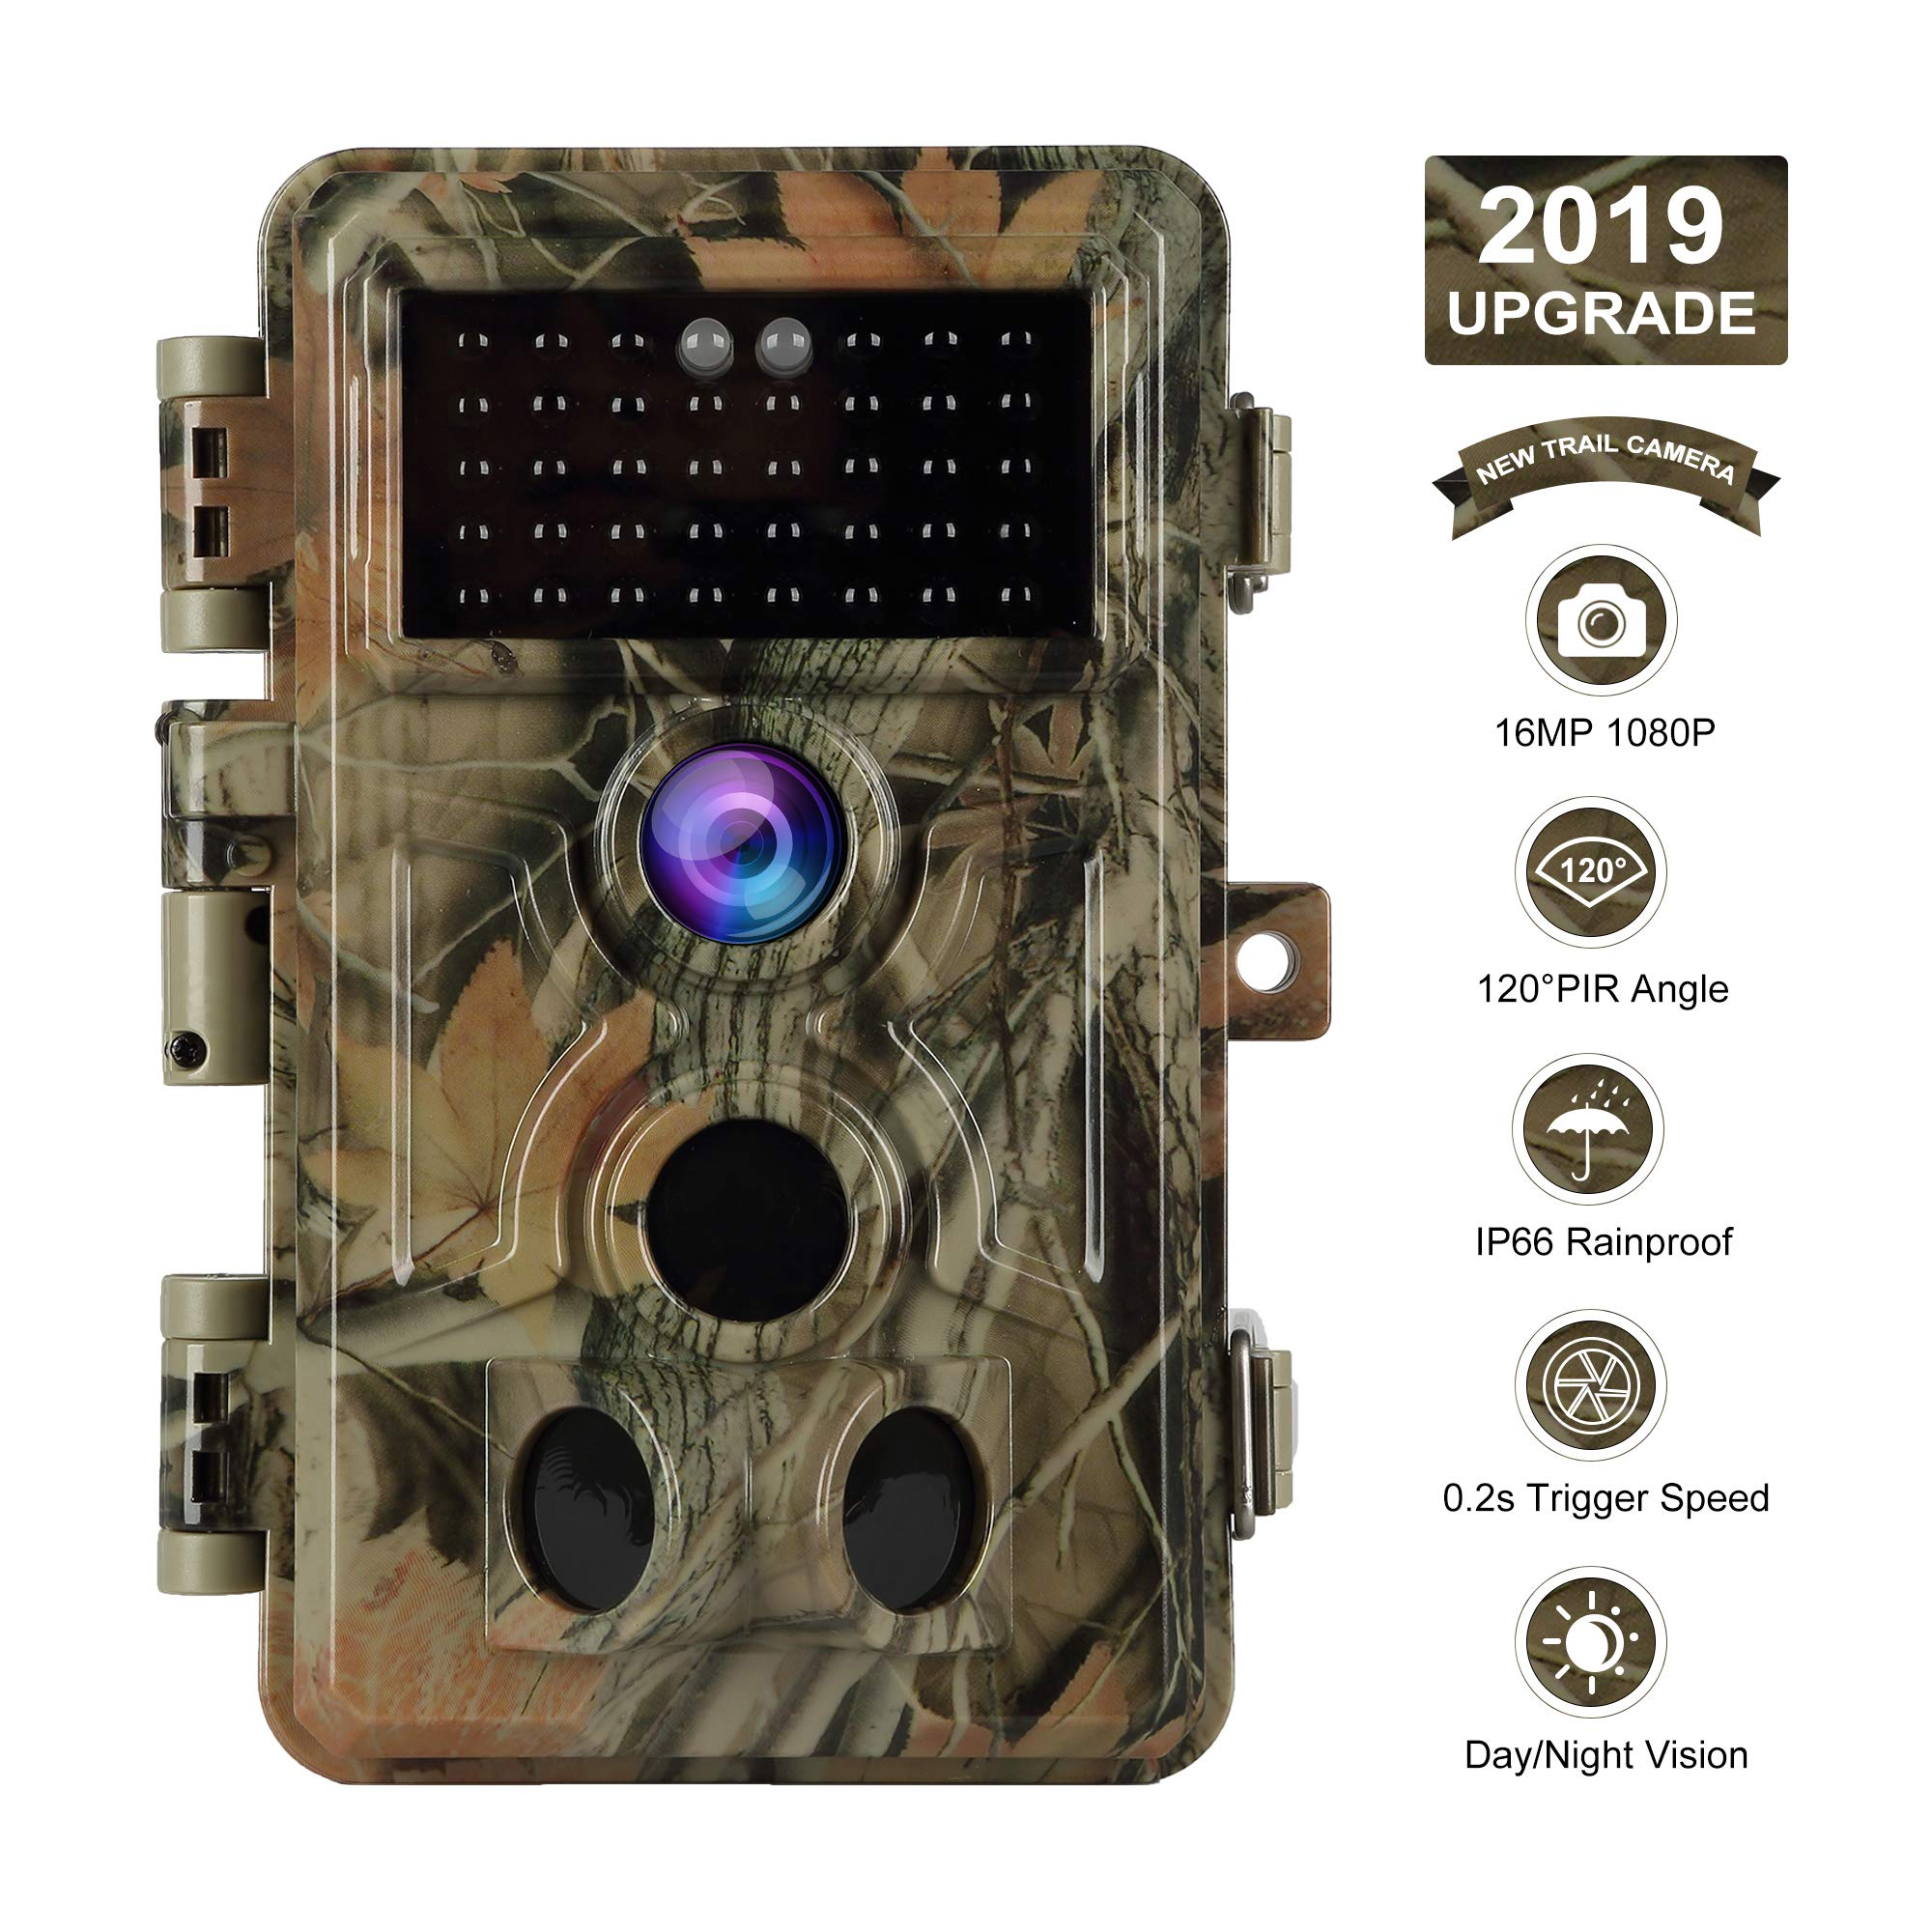 【2019 Upgrade】 Trail Camera 16MP 1080P Game Camera with No Glow Night Vision Up to 65ft 0.2s Trigger Time Motion Activated 2.4'' Color Screen and Easy Operate Keypad Waterproof Wildlife Hunting Camera